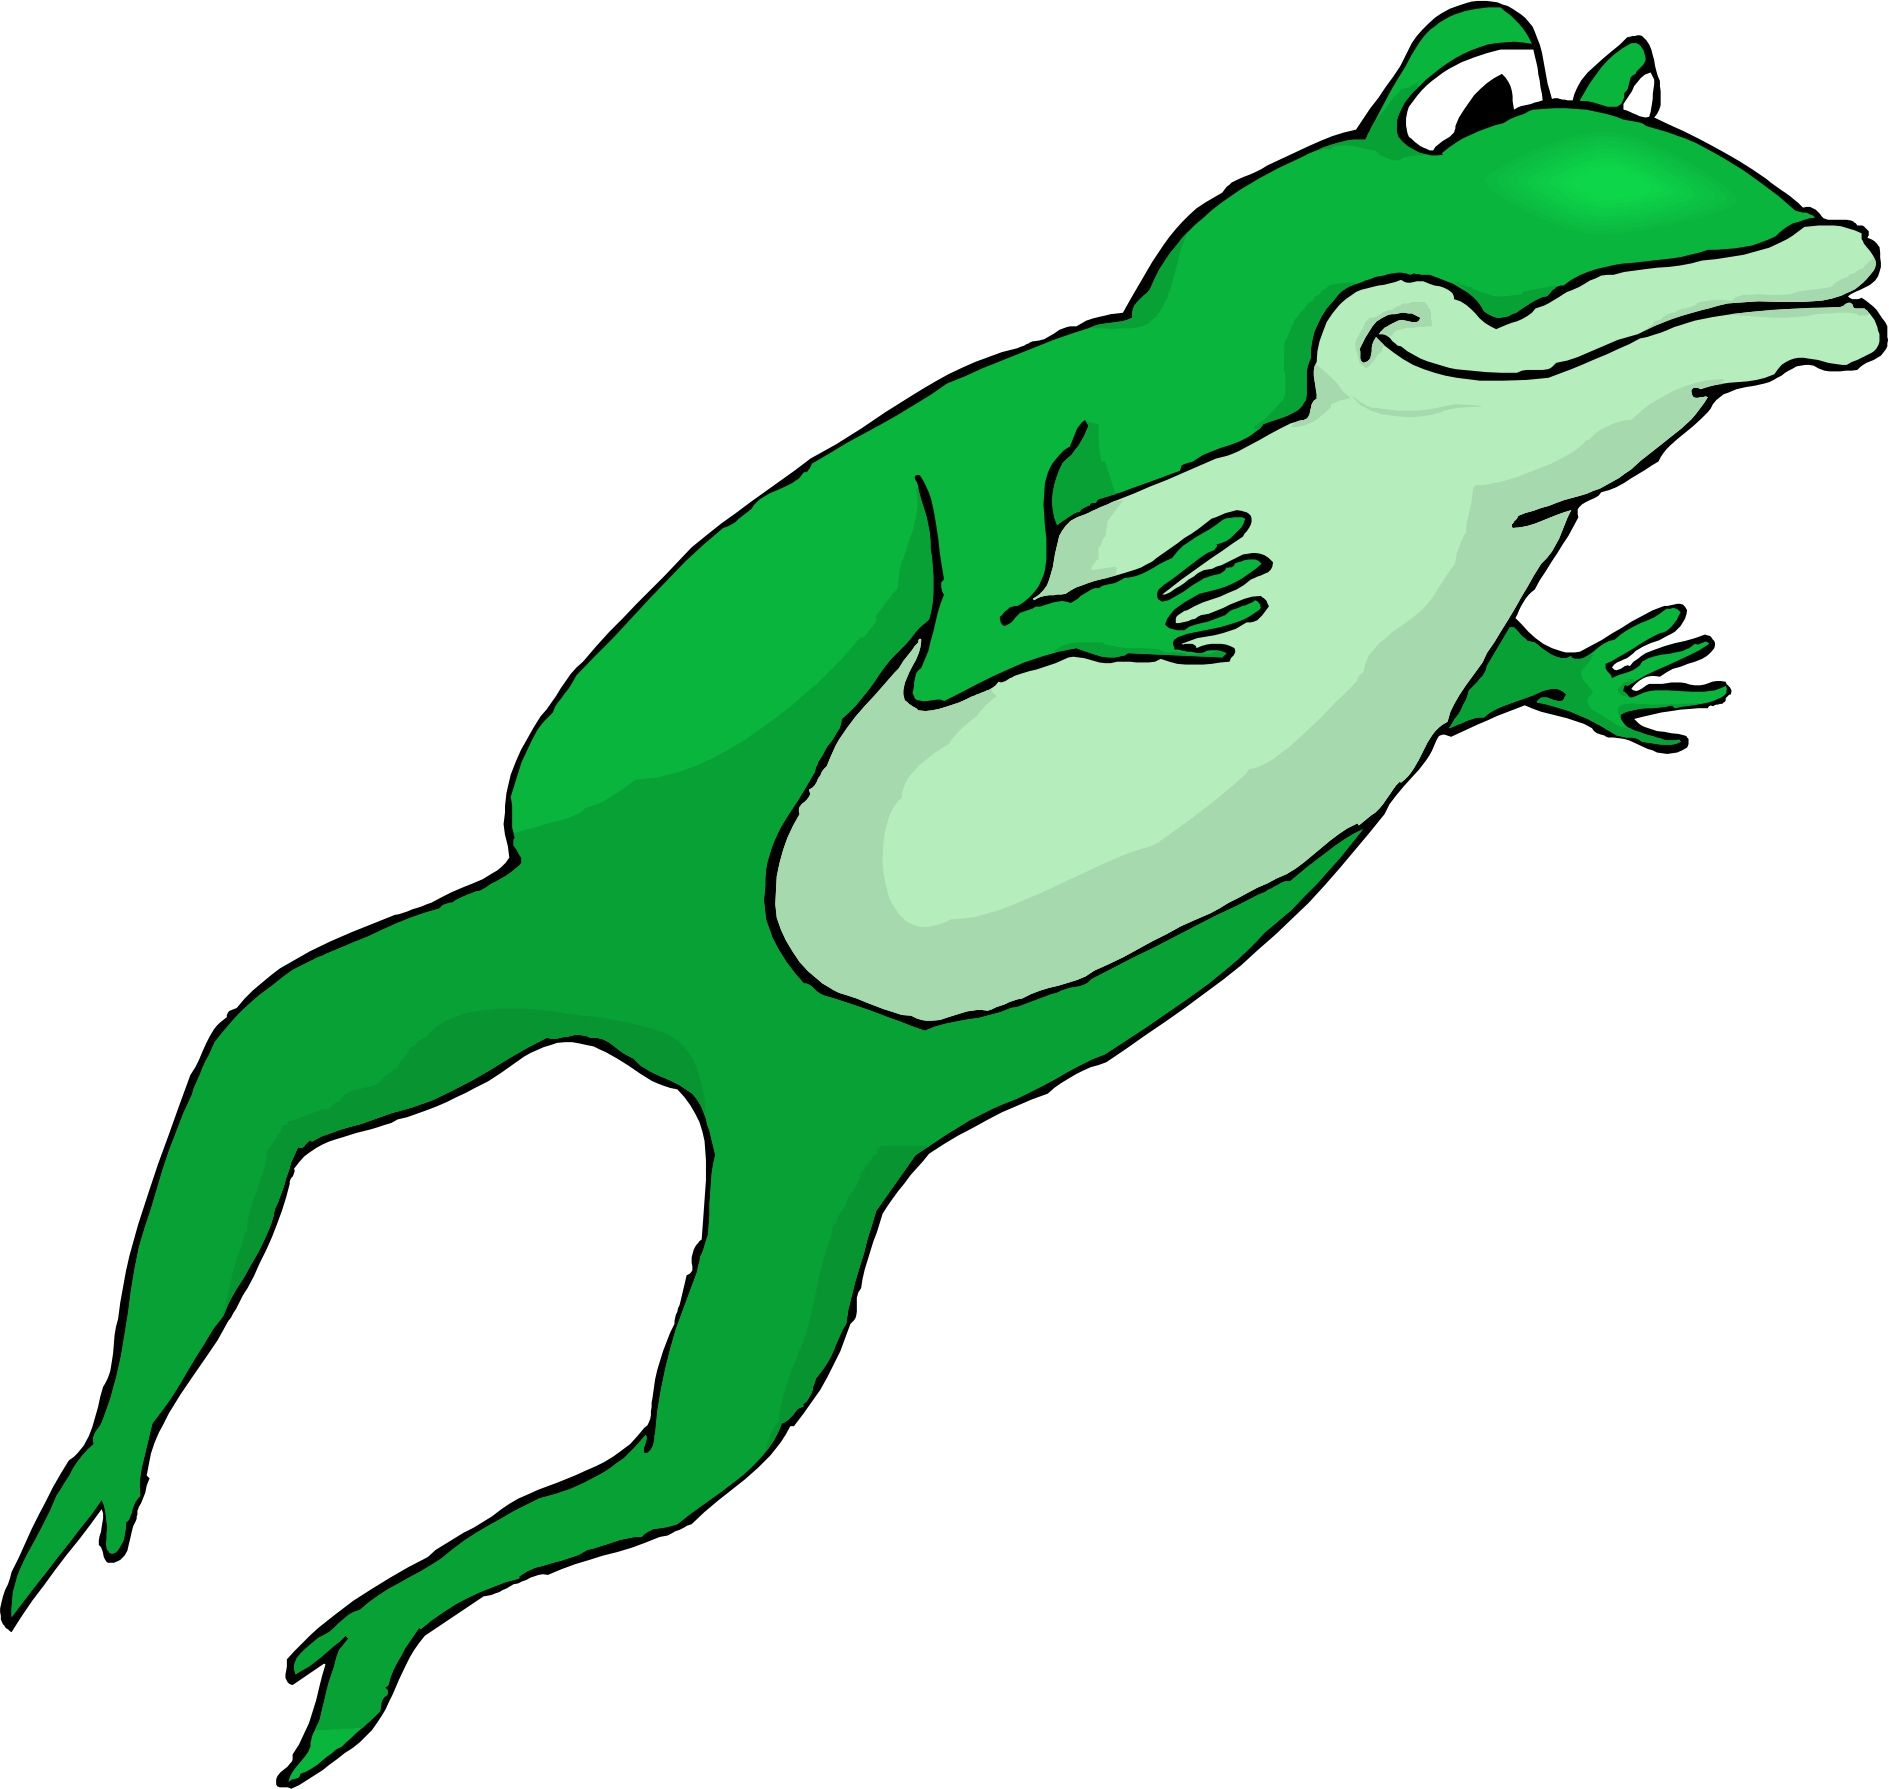 image search cartoon leaping frog clipart [ 1889 x 1789 Pixel ]